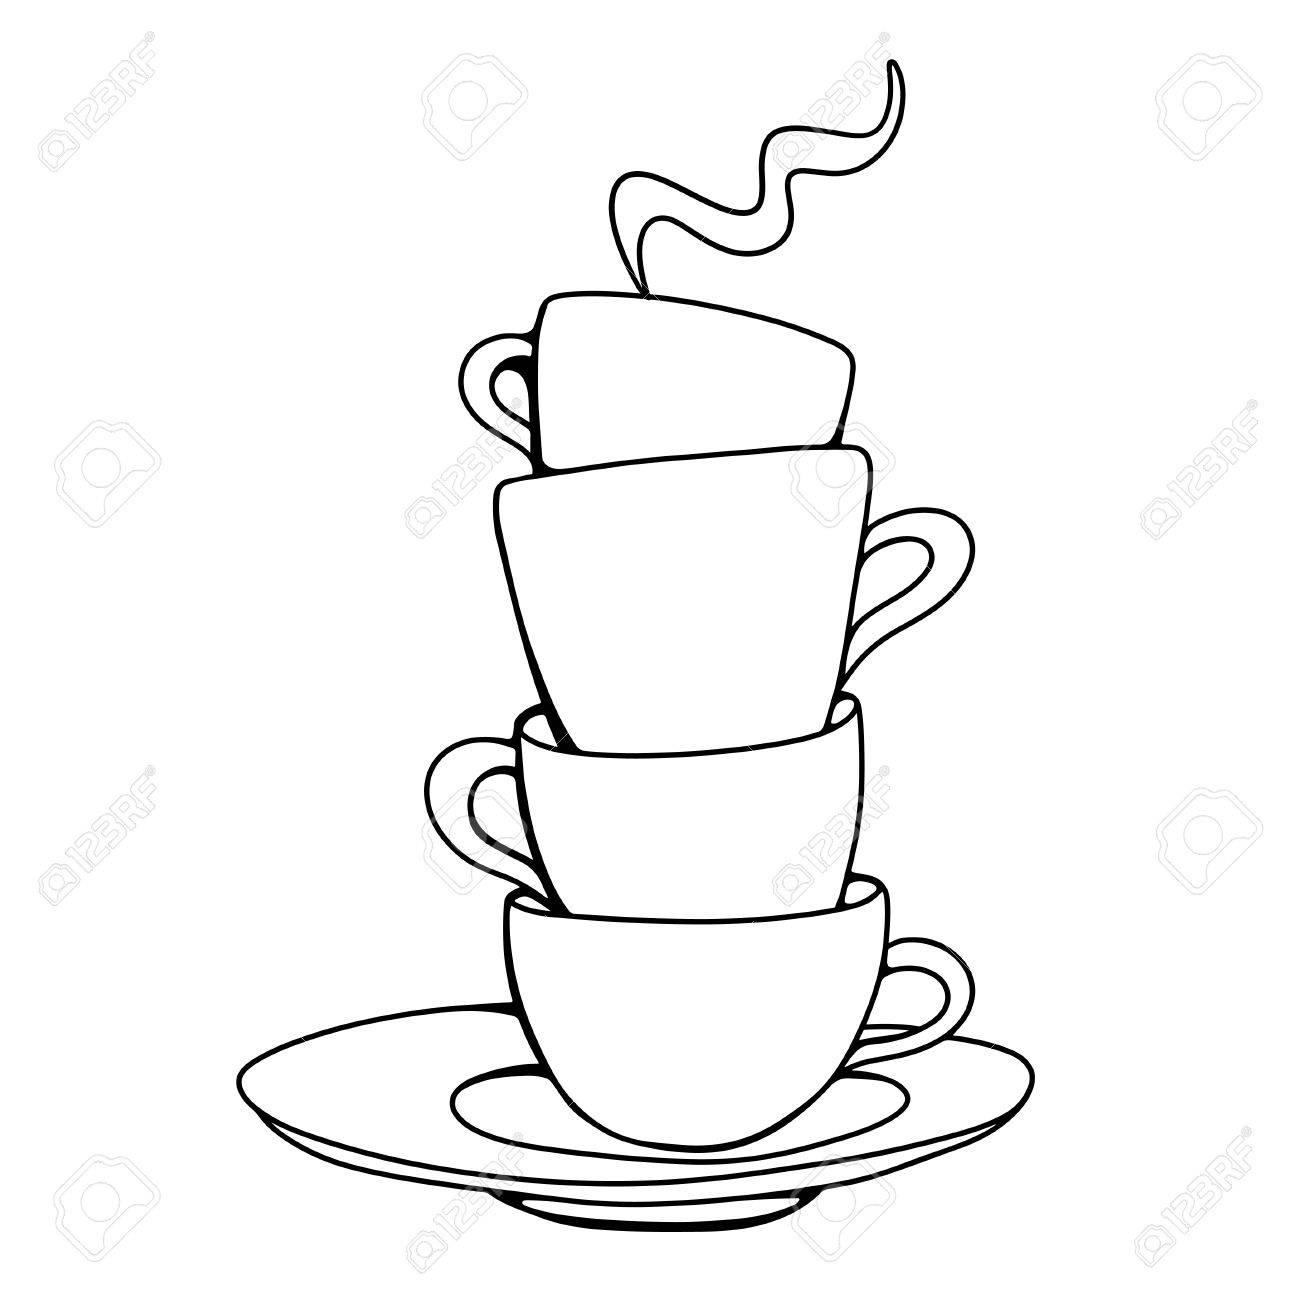 Set Sketch Cups And Saucer Isolated Vector Royalty Free Cliparts Vectors And Stock Illustration Image 23679249